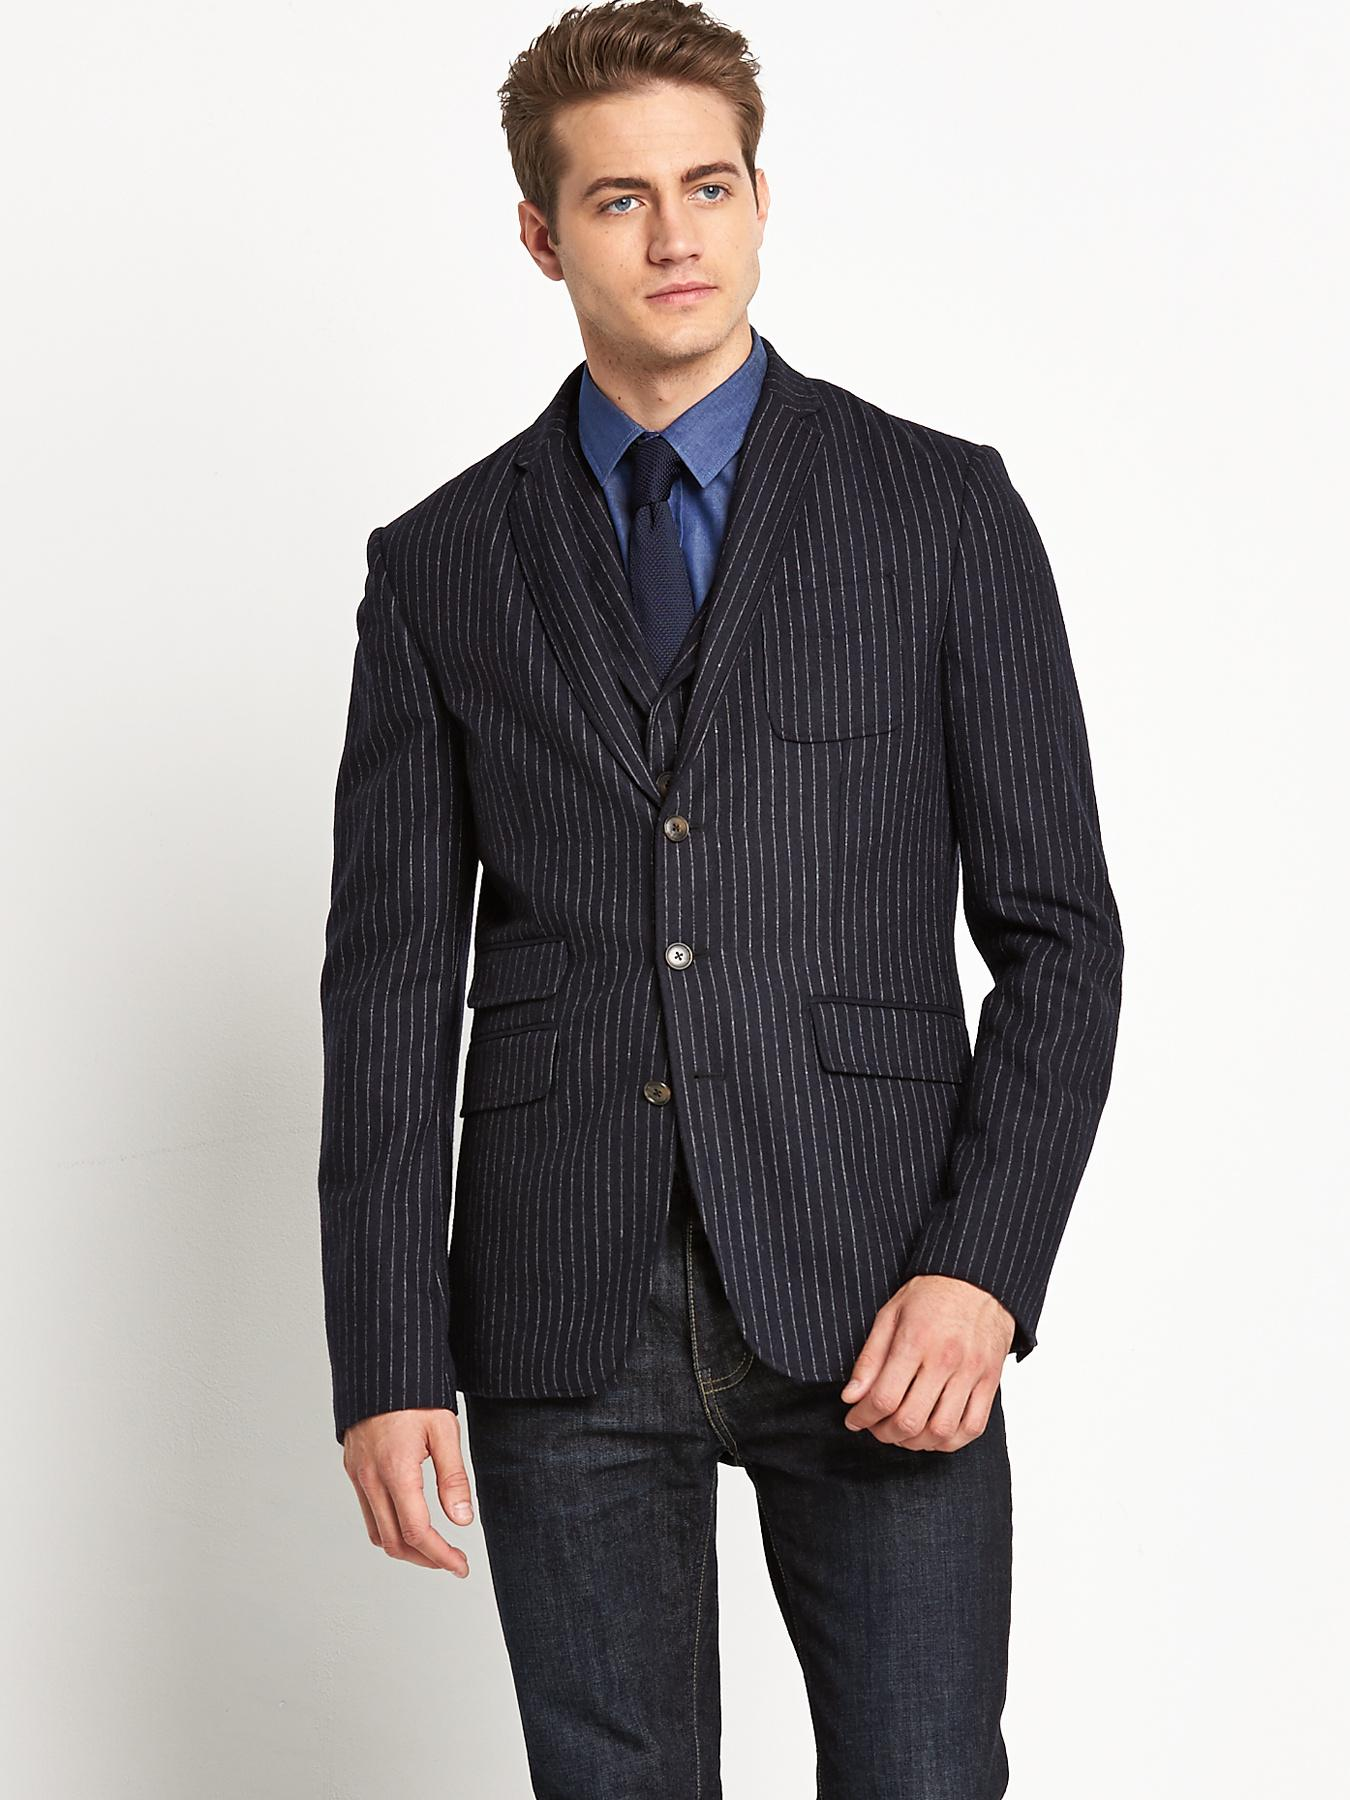 Mens Single Breasted Chalk Stripe Jacket, Navy